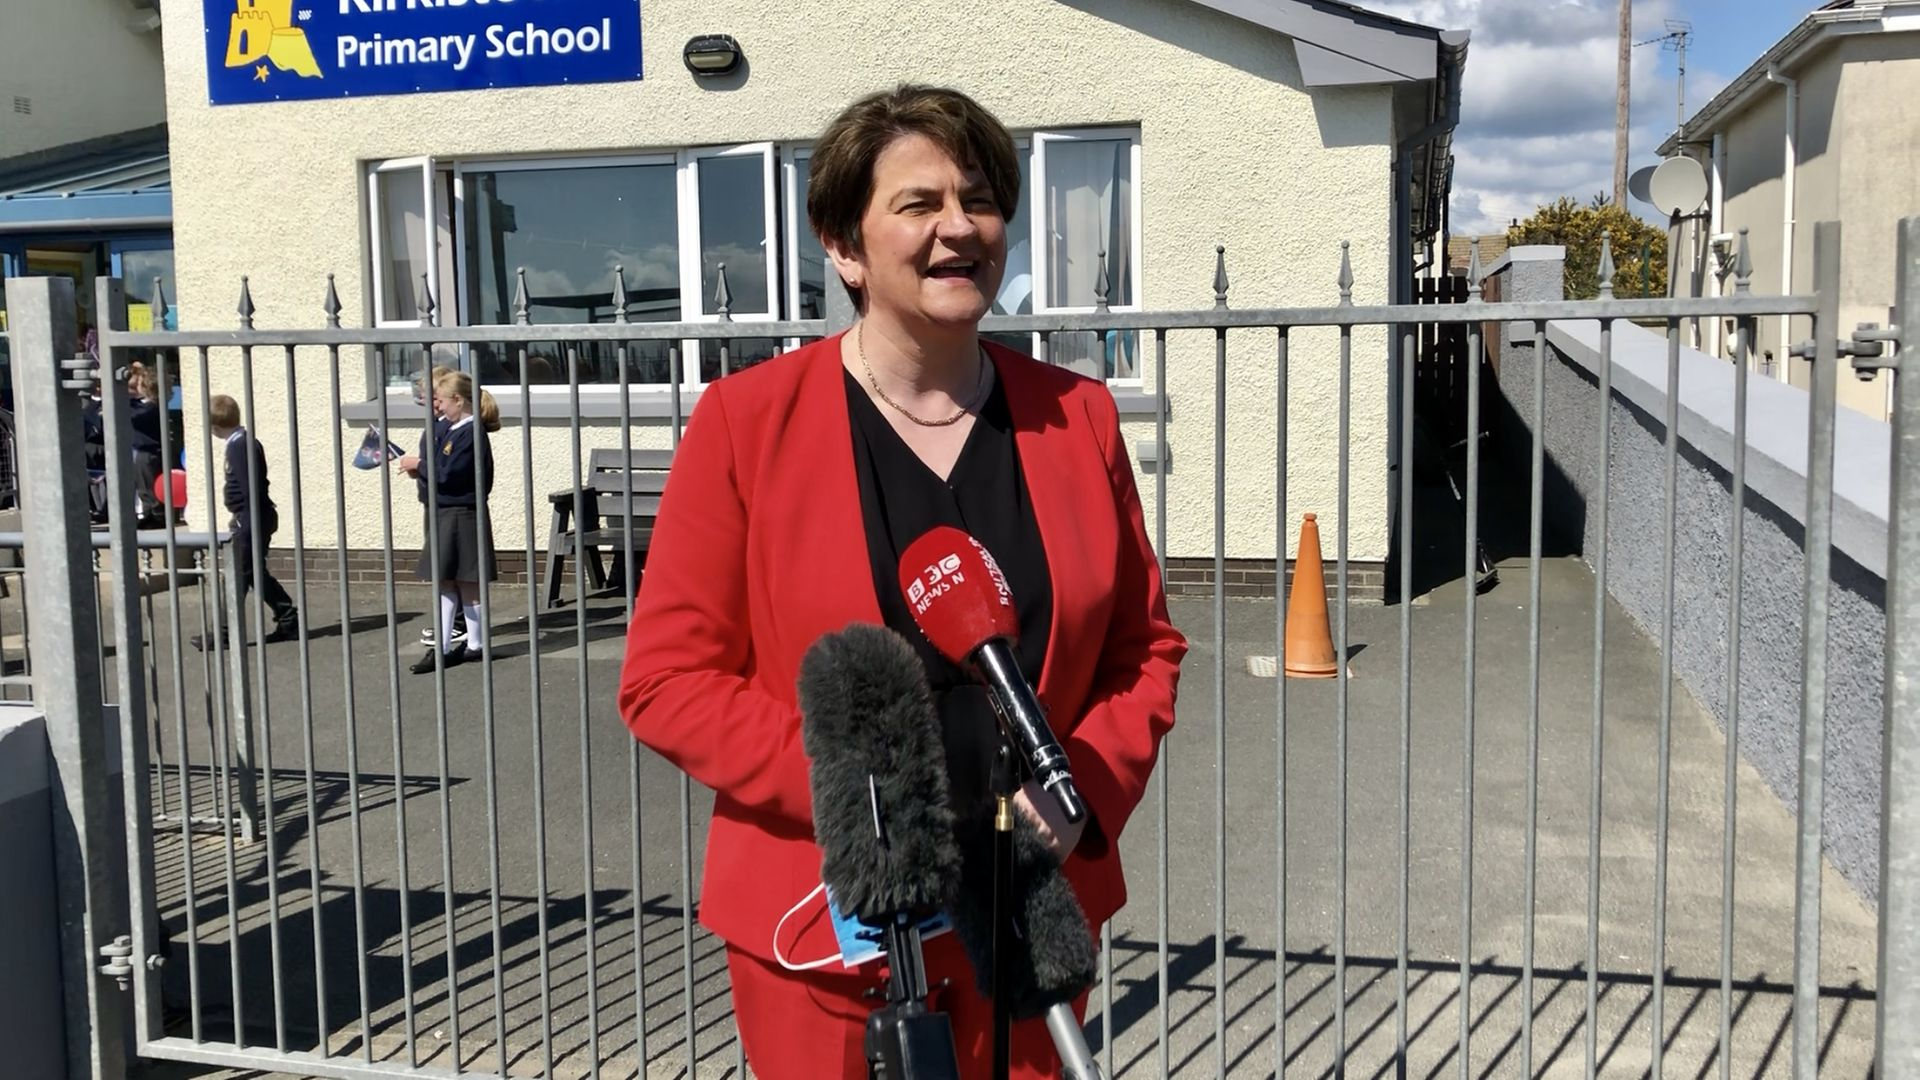 Arlene Foster during a visit to Kirkistown primary school in Co Down, Northern Ireland - Credit: PA